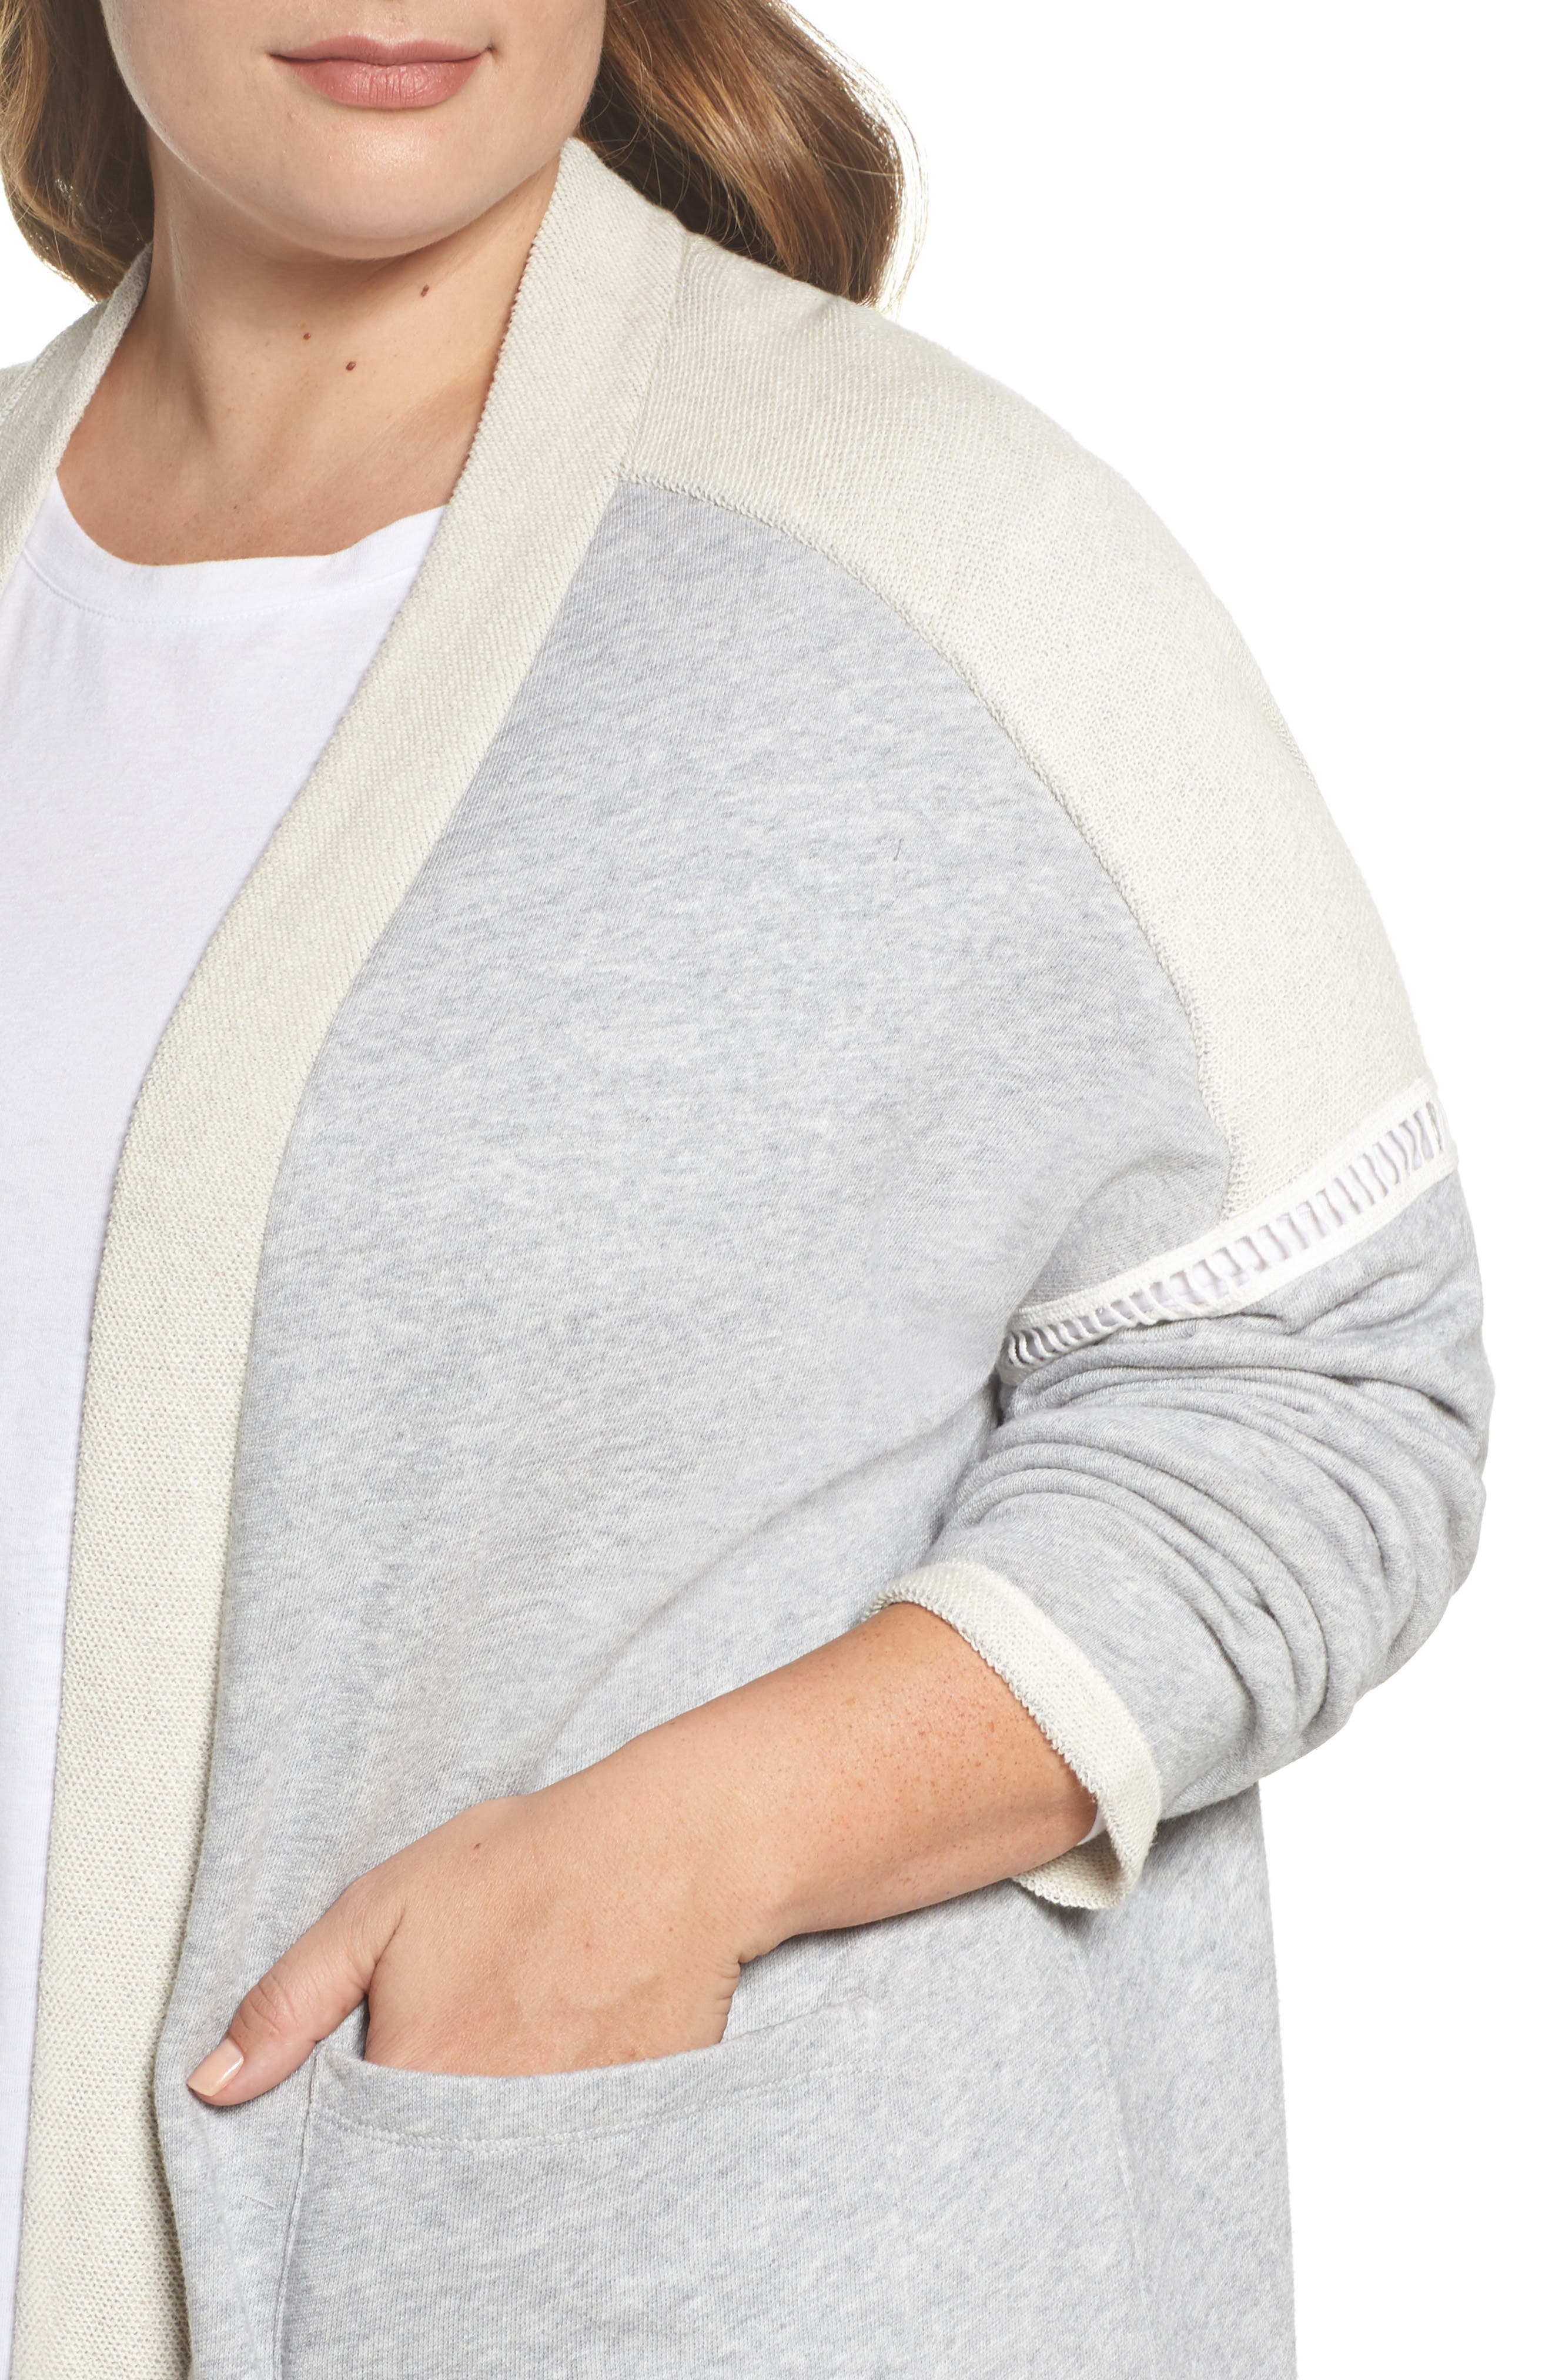 French Terry Cardigan,                             Alternate thumbnail 4, color,                             Grey Heather